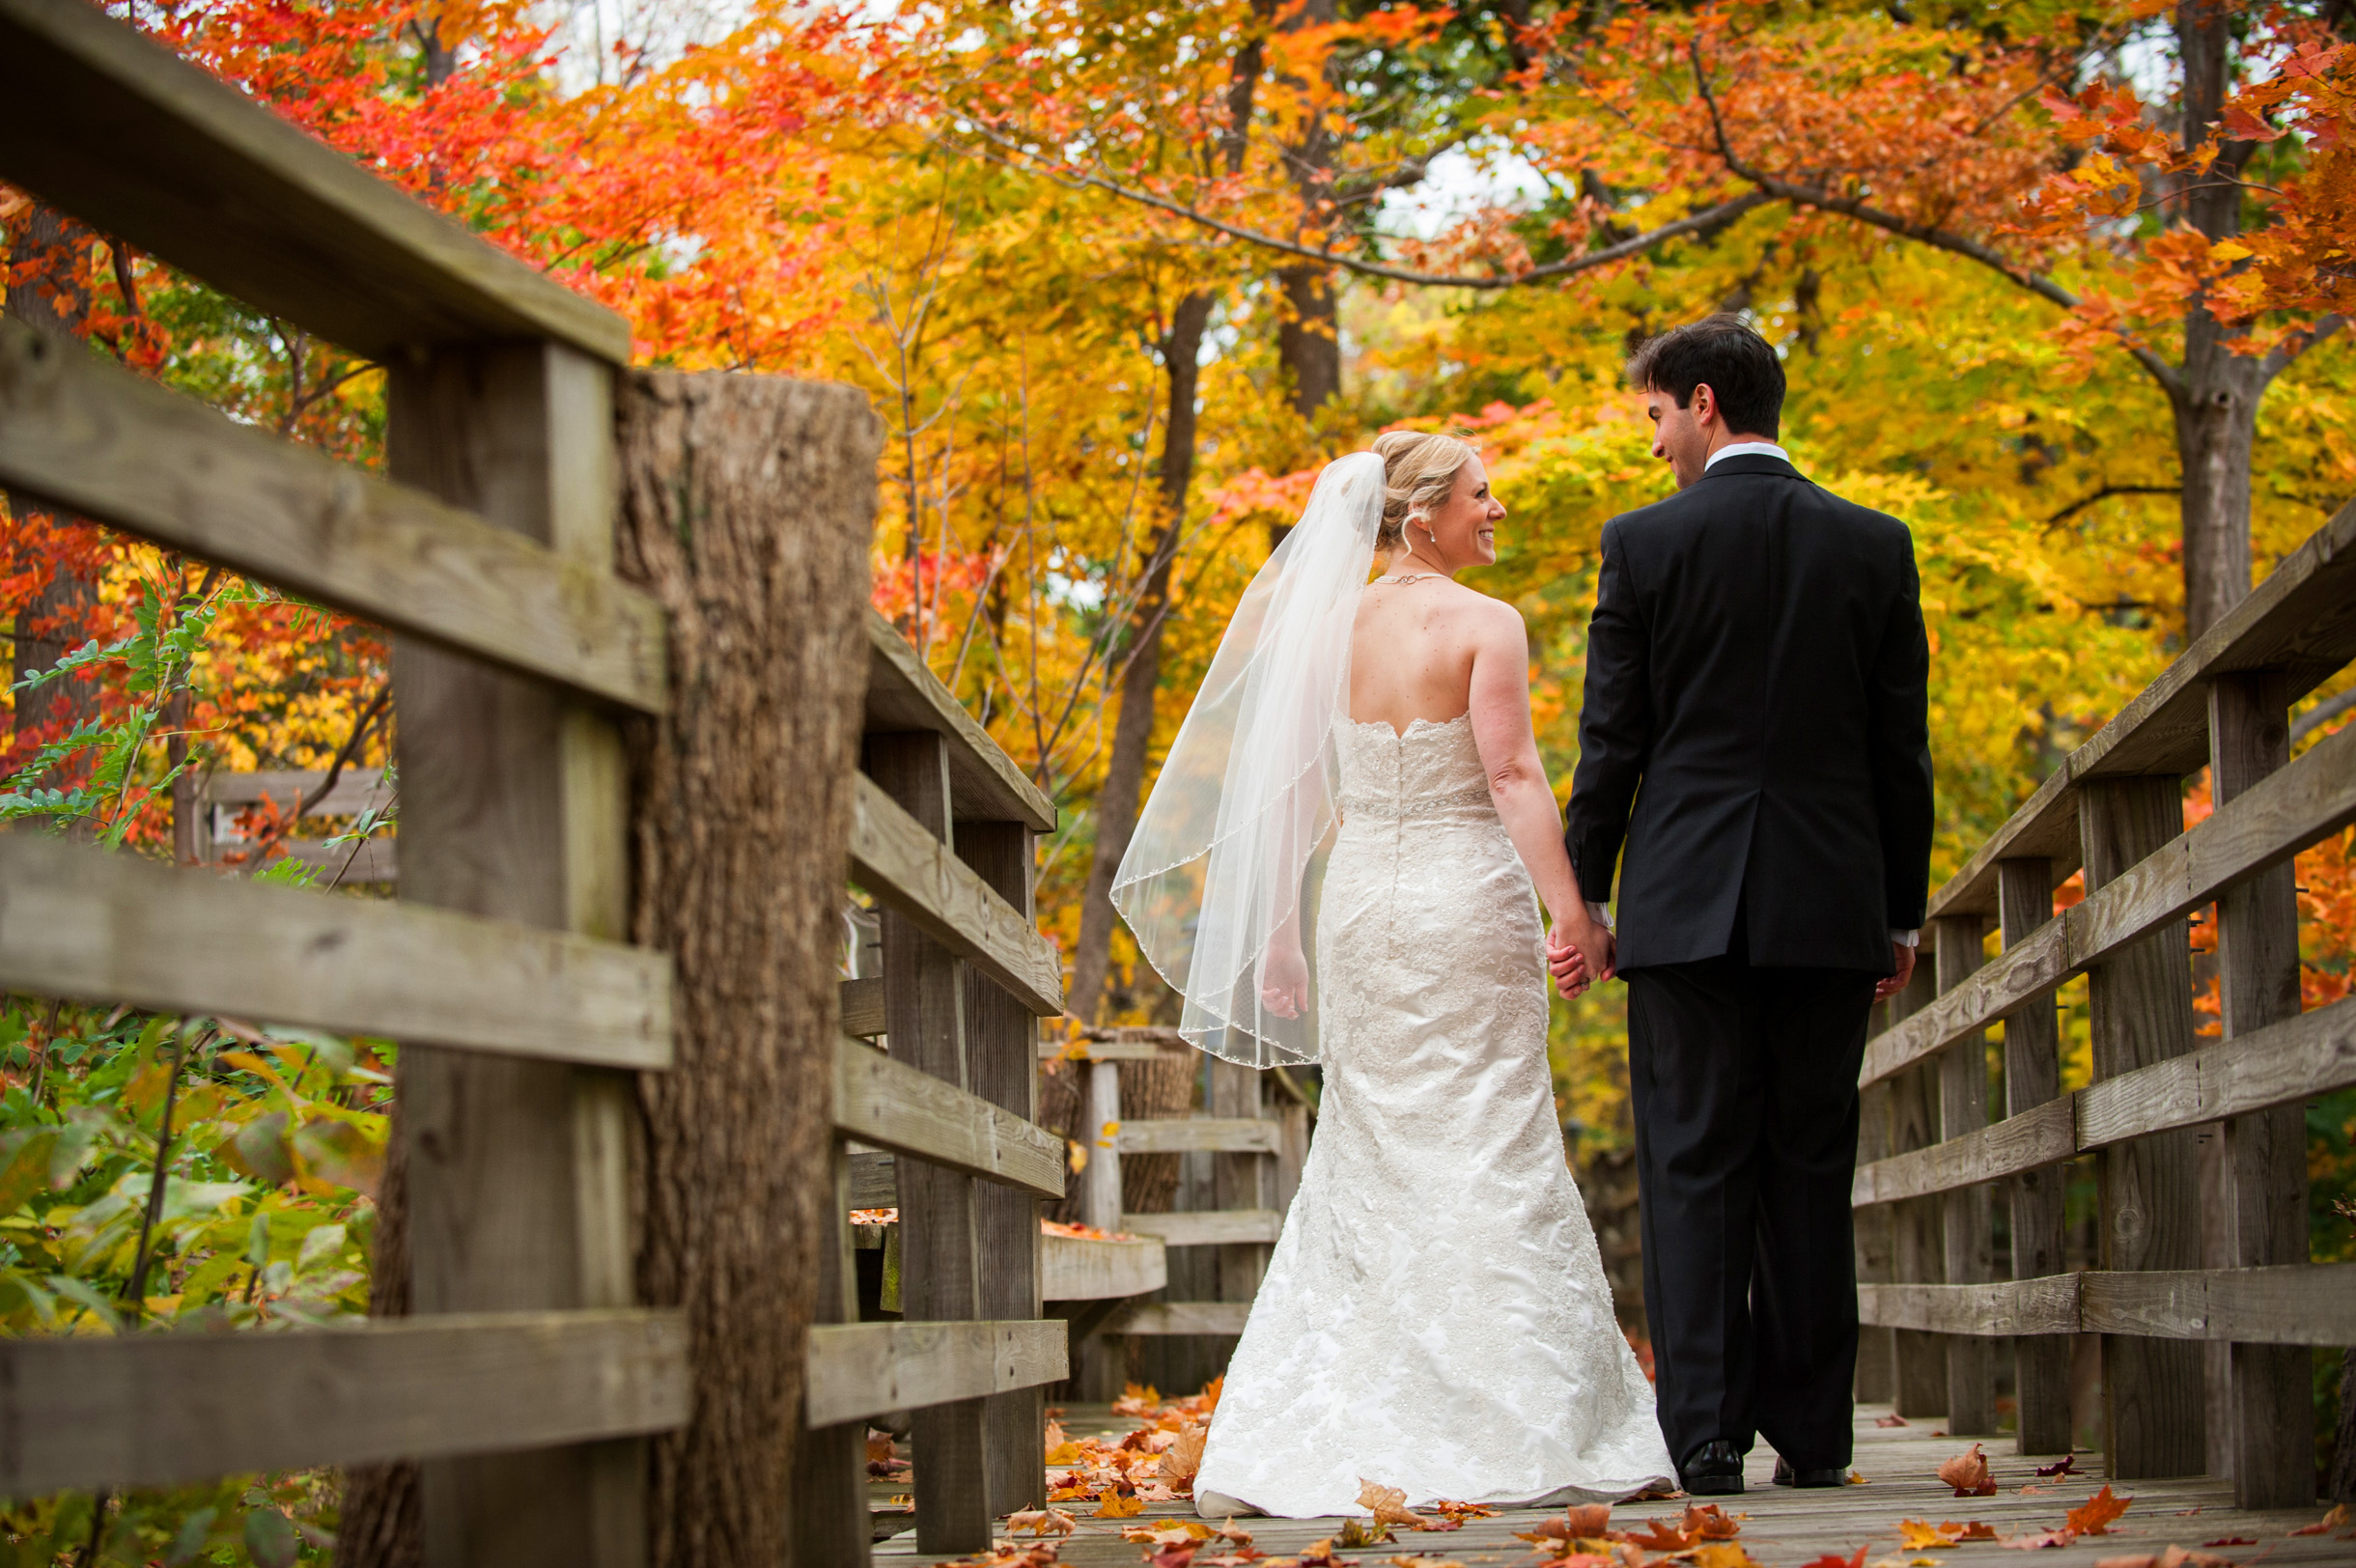 Bride and Groom walking down path hand in hand during their Fall outdoor wedding ceremony-263